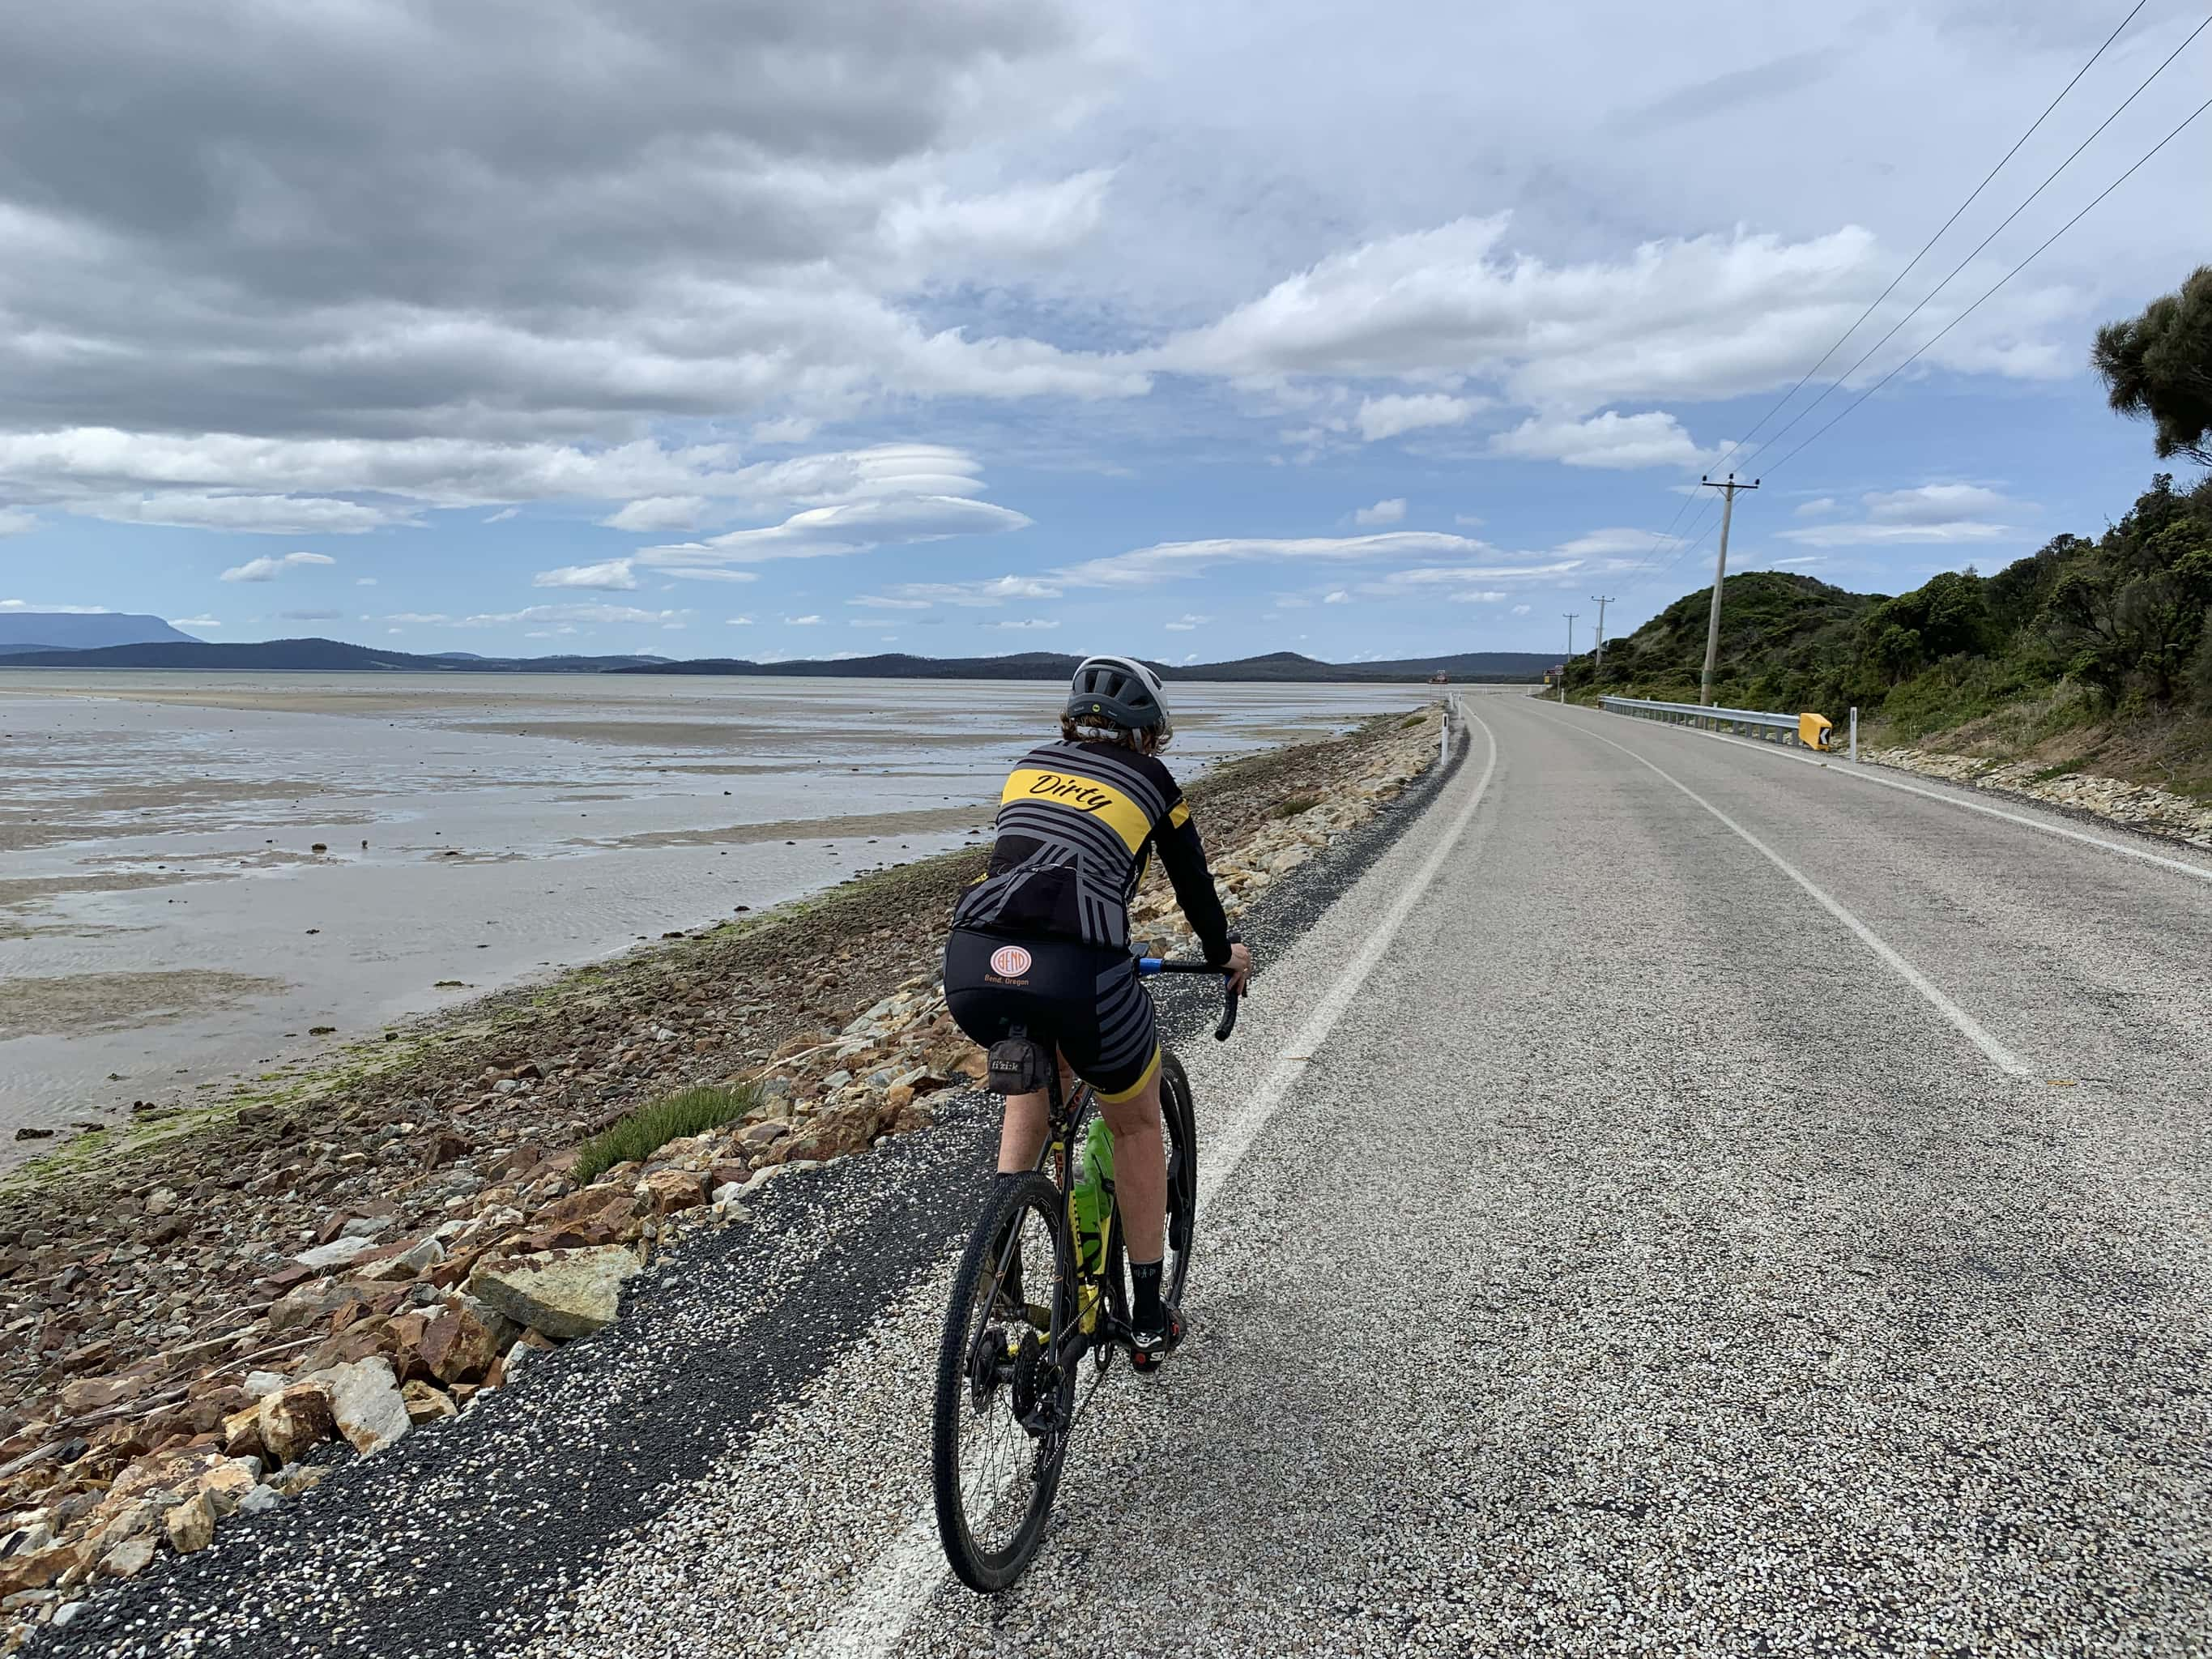 Bike rider on paved road riding towards Bruny Island Neck lookout.